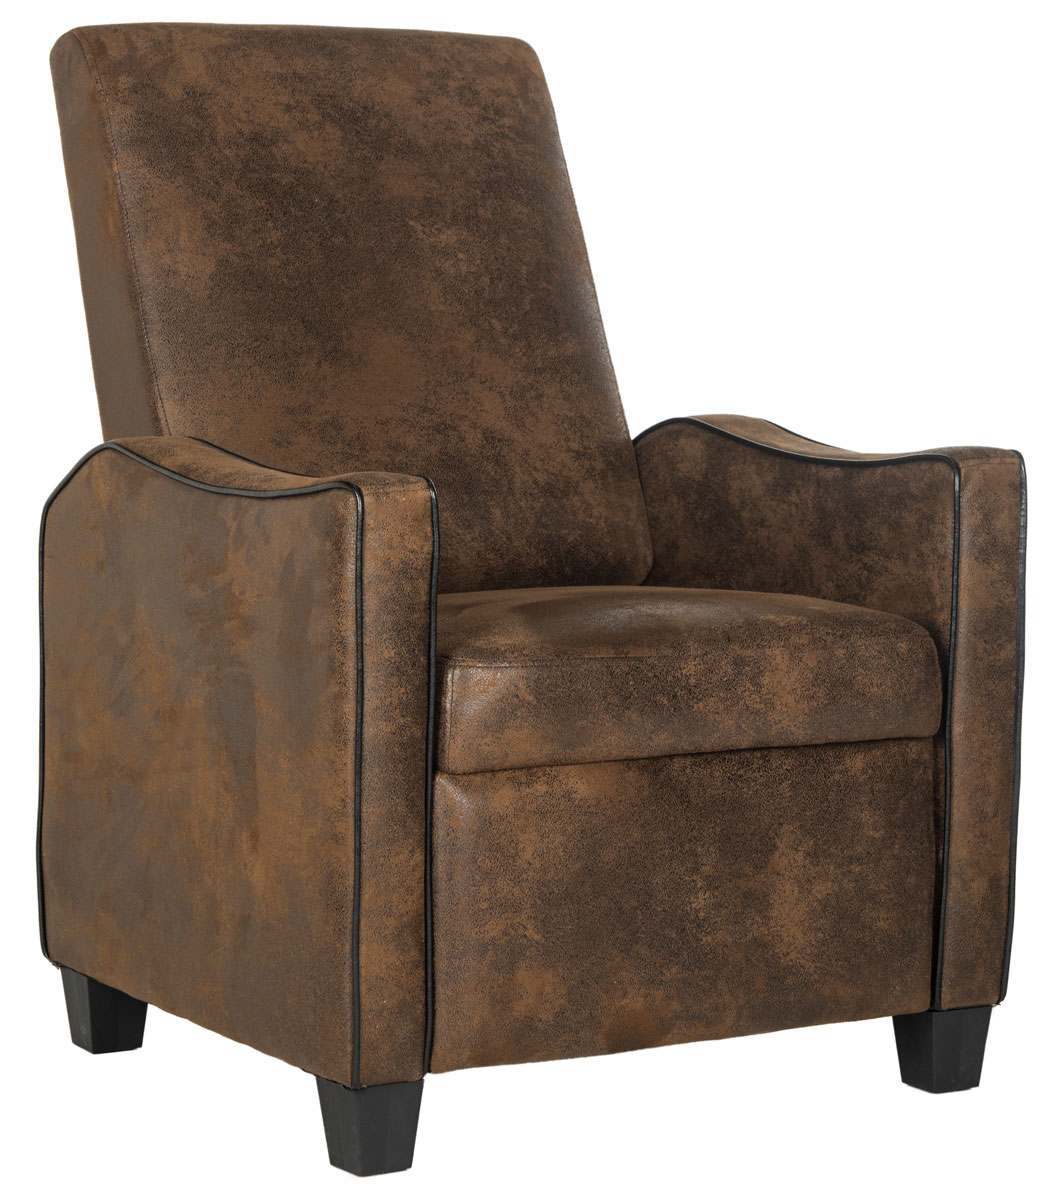 HOLDEN VINTAGE RECLINER CHAIR FOX6208E RECLINERS